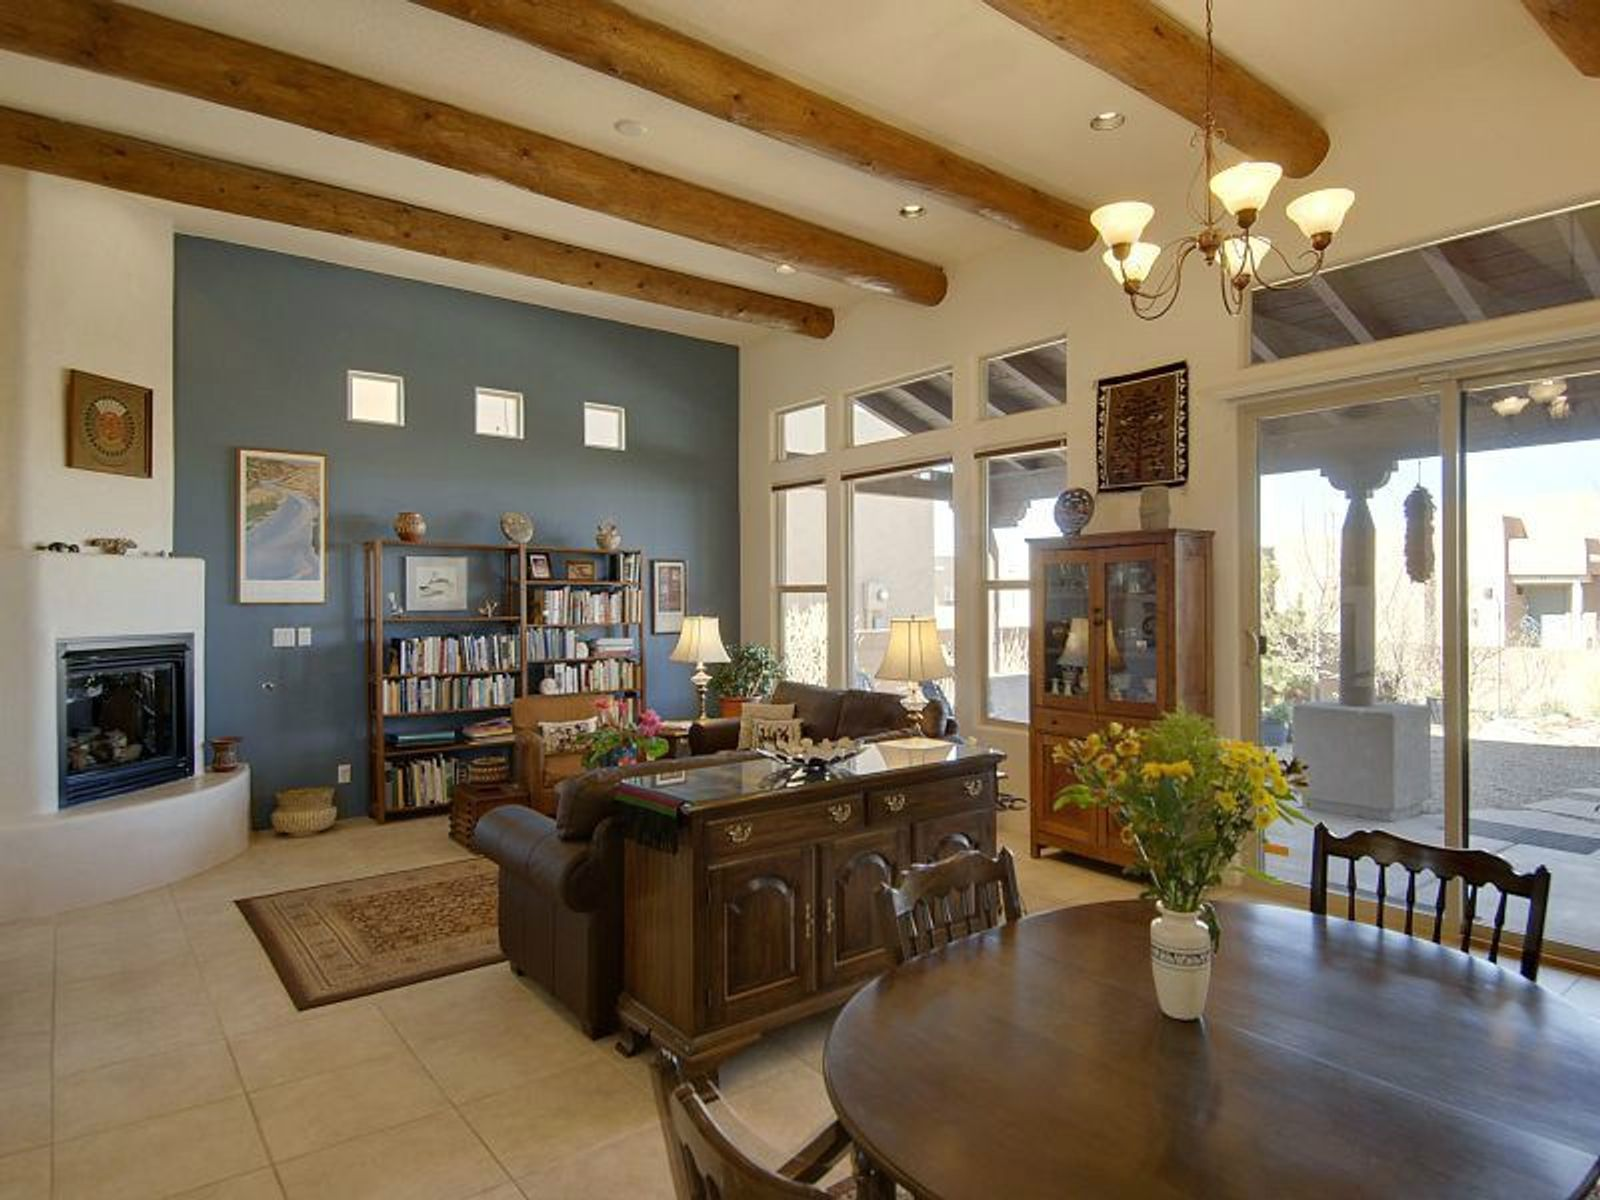 1 Pajarito Peak, Santa Fe NM Single Family Home - Santa Fe Real Estate